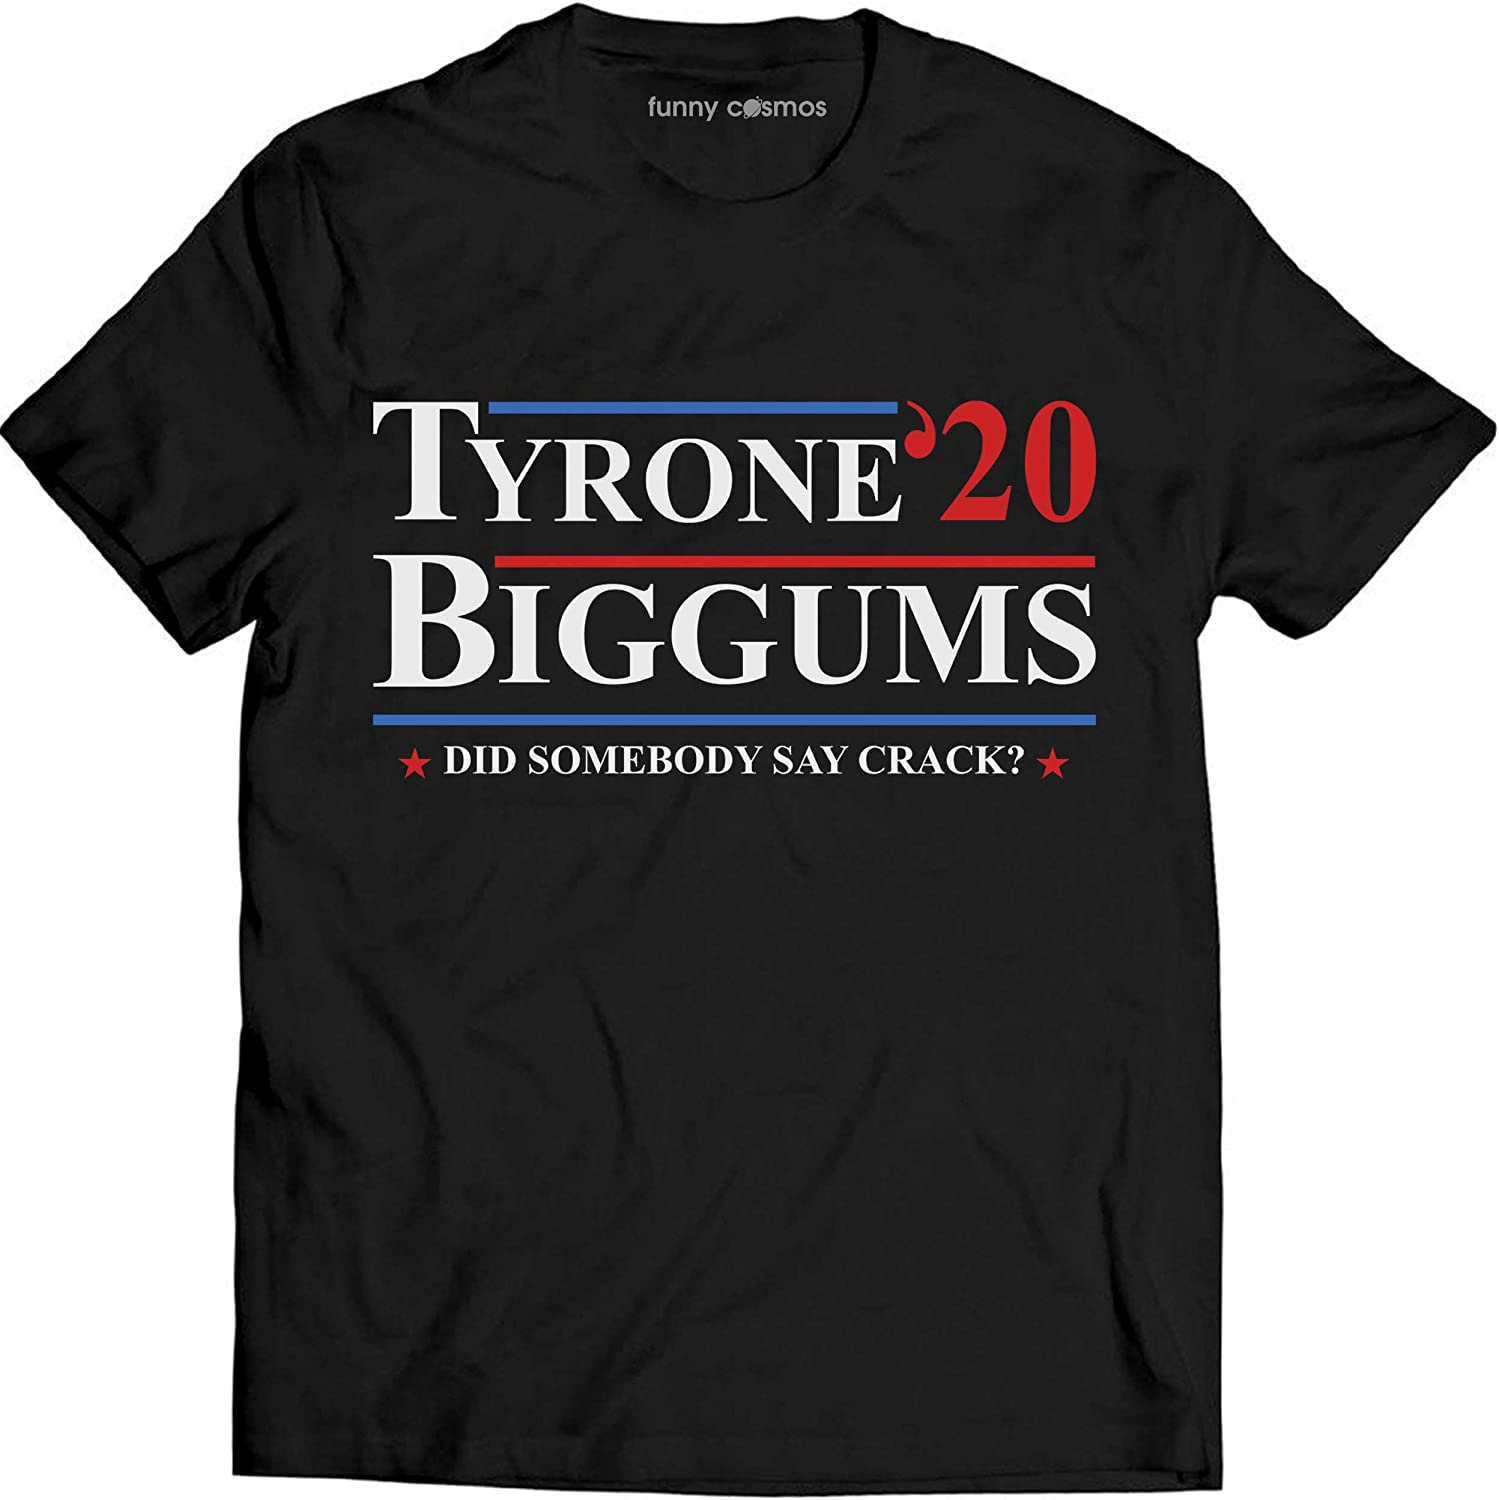 amazon com tyrone biggums 2020 for president did somebody say crack funny t shirt chappelle s show clothing tyrone biggums 2020 for president did somebody say crack funny t shirt chappelle s show